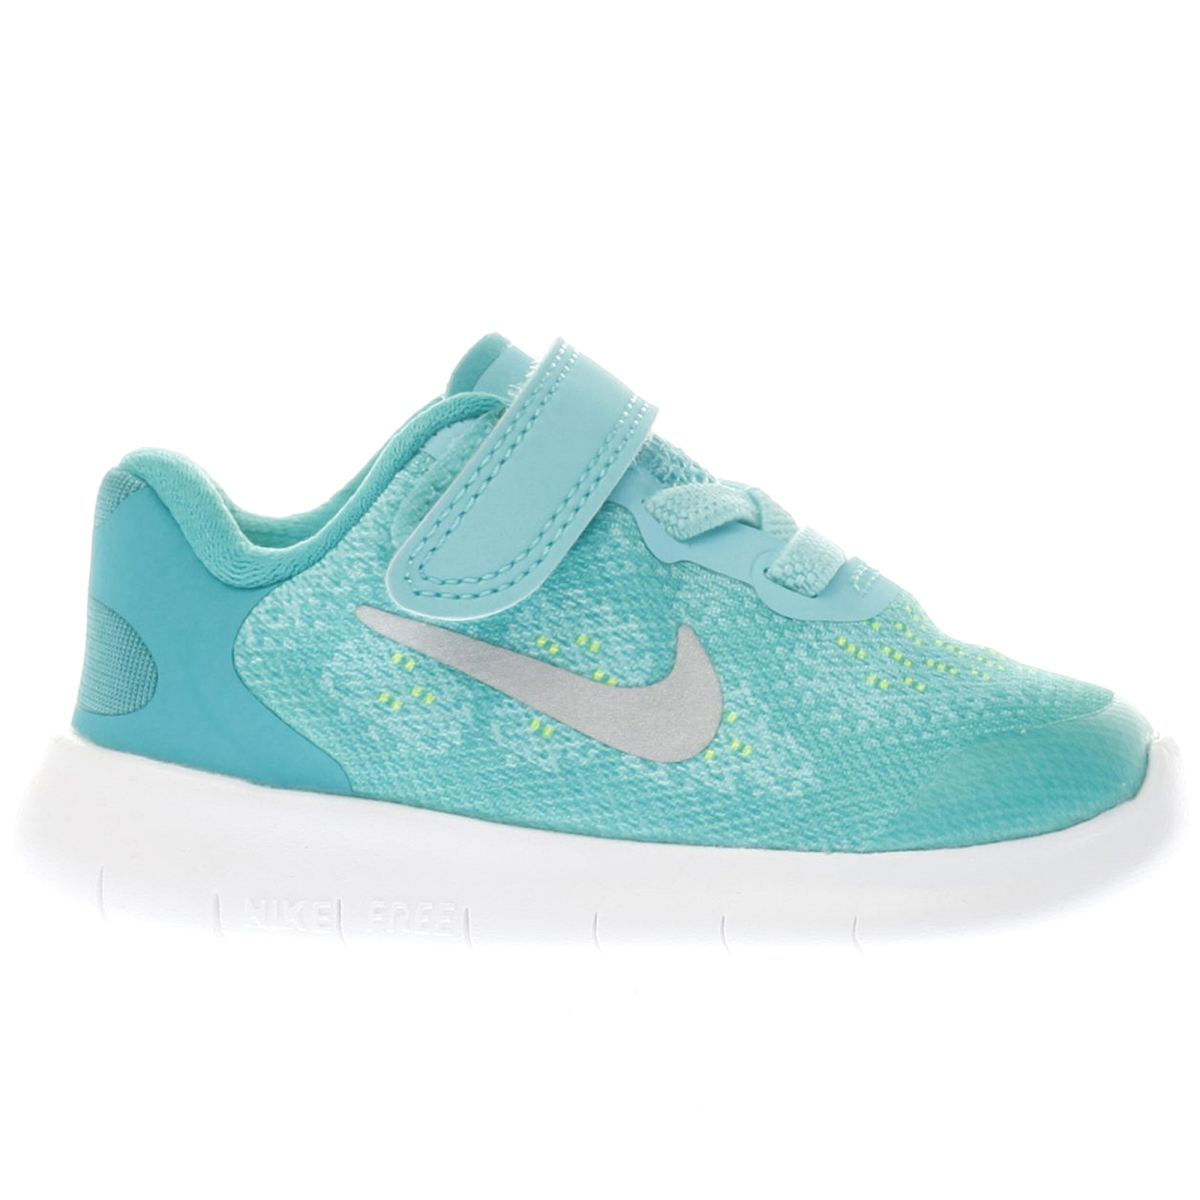 nike turquoise free run 2 Girls Toddler Trainers